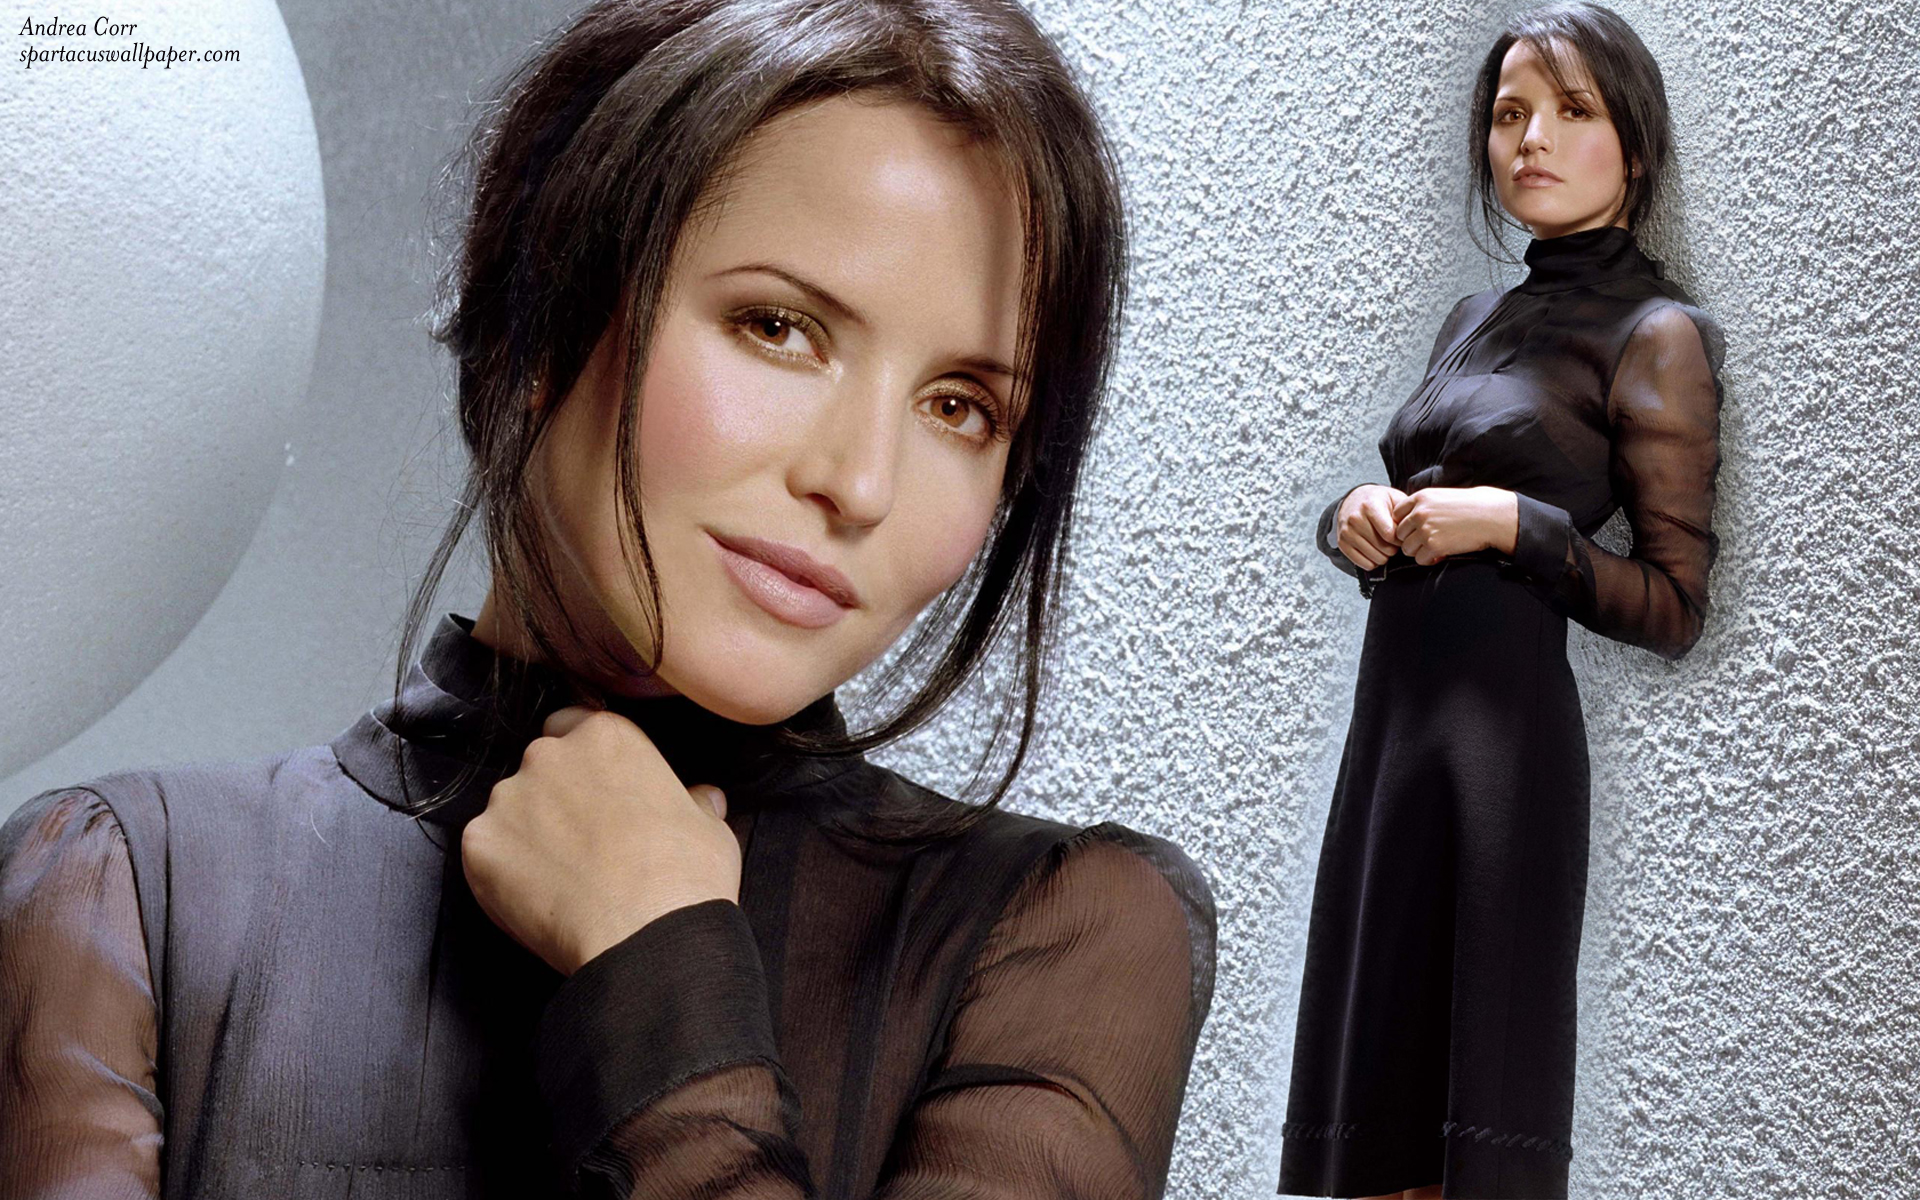 Andrea corr ii desktop backgrounds mobile home screens andrea corr ii altavistaventures Choice Image